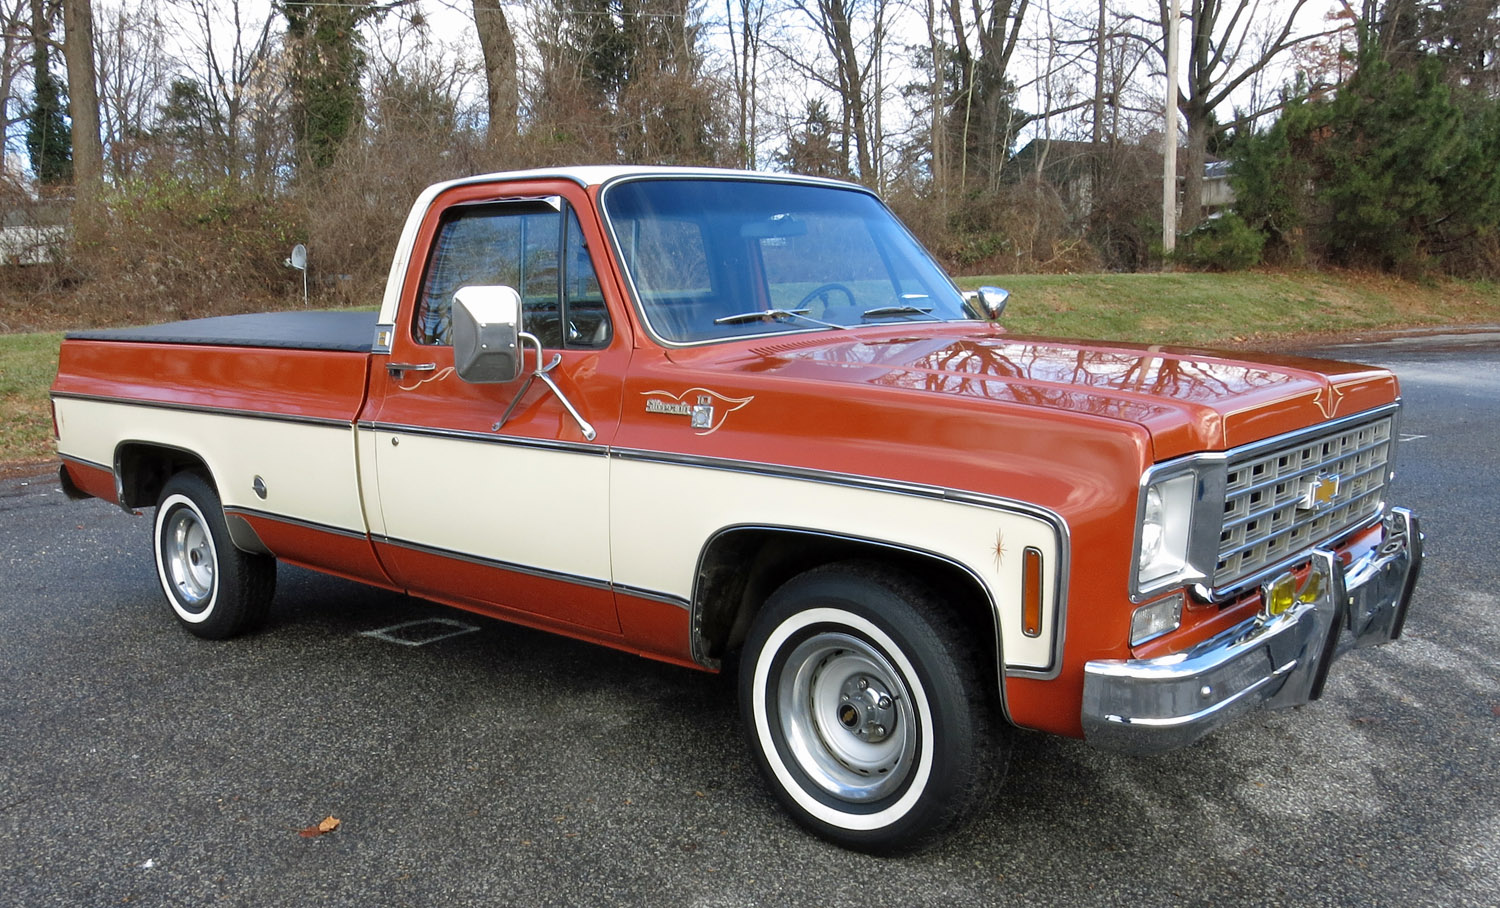 Image result for 76 chevy pickup orange